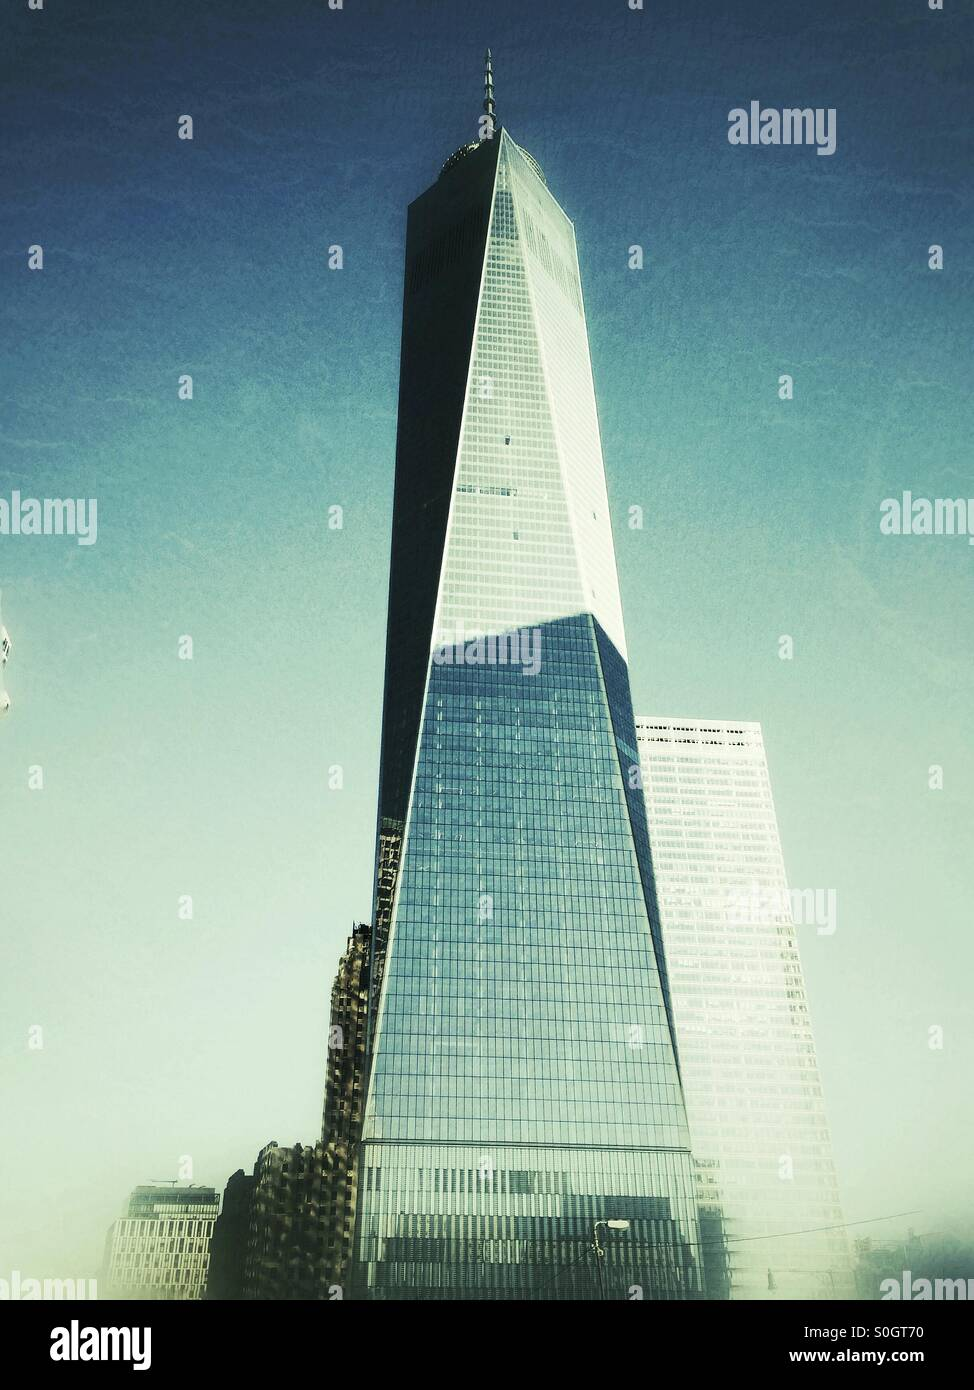 Low angle view of the Freedom Tower set against a blue sky. New York City, United States of America. - Stock Image